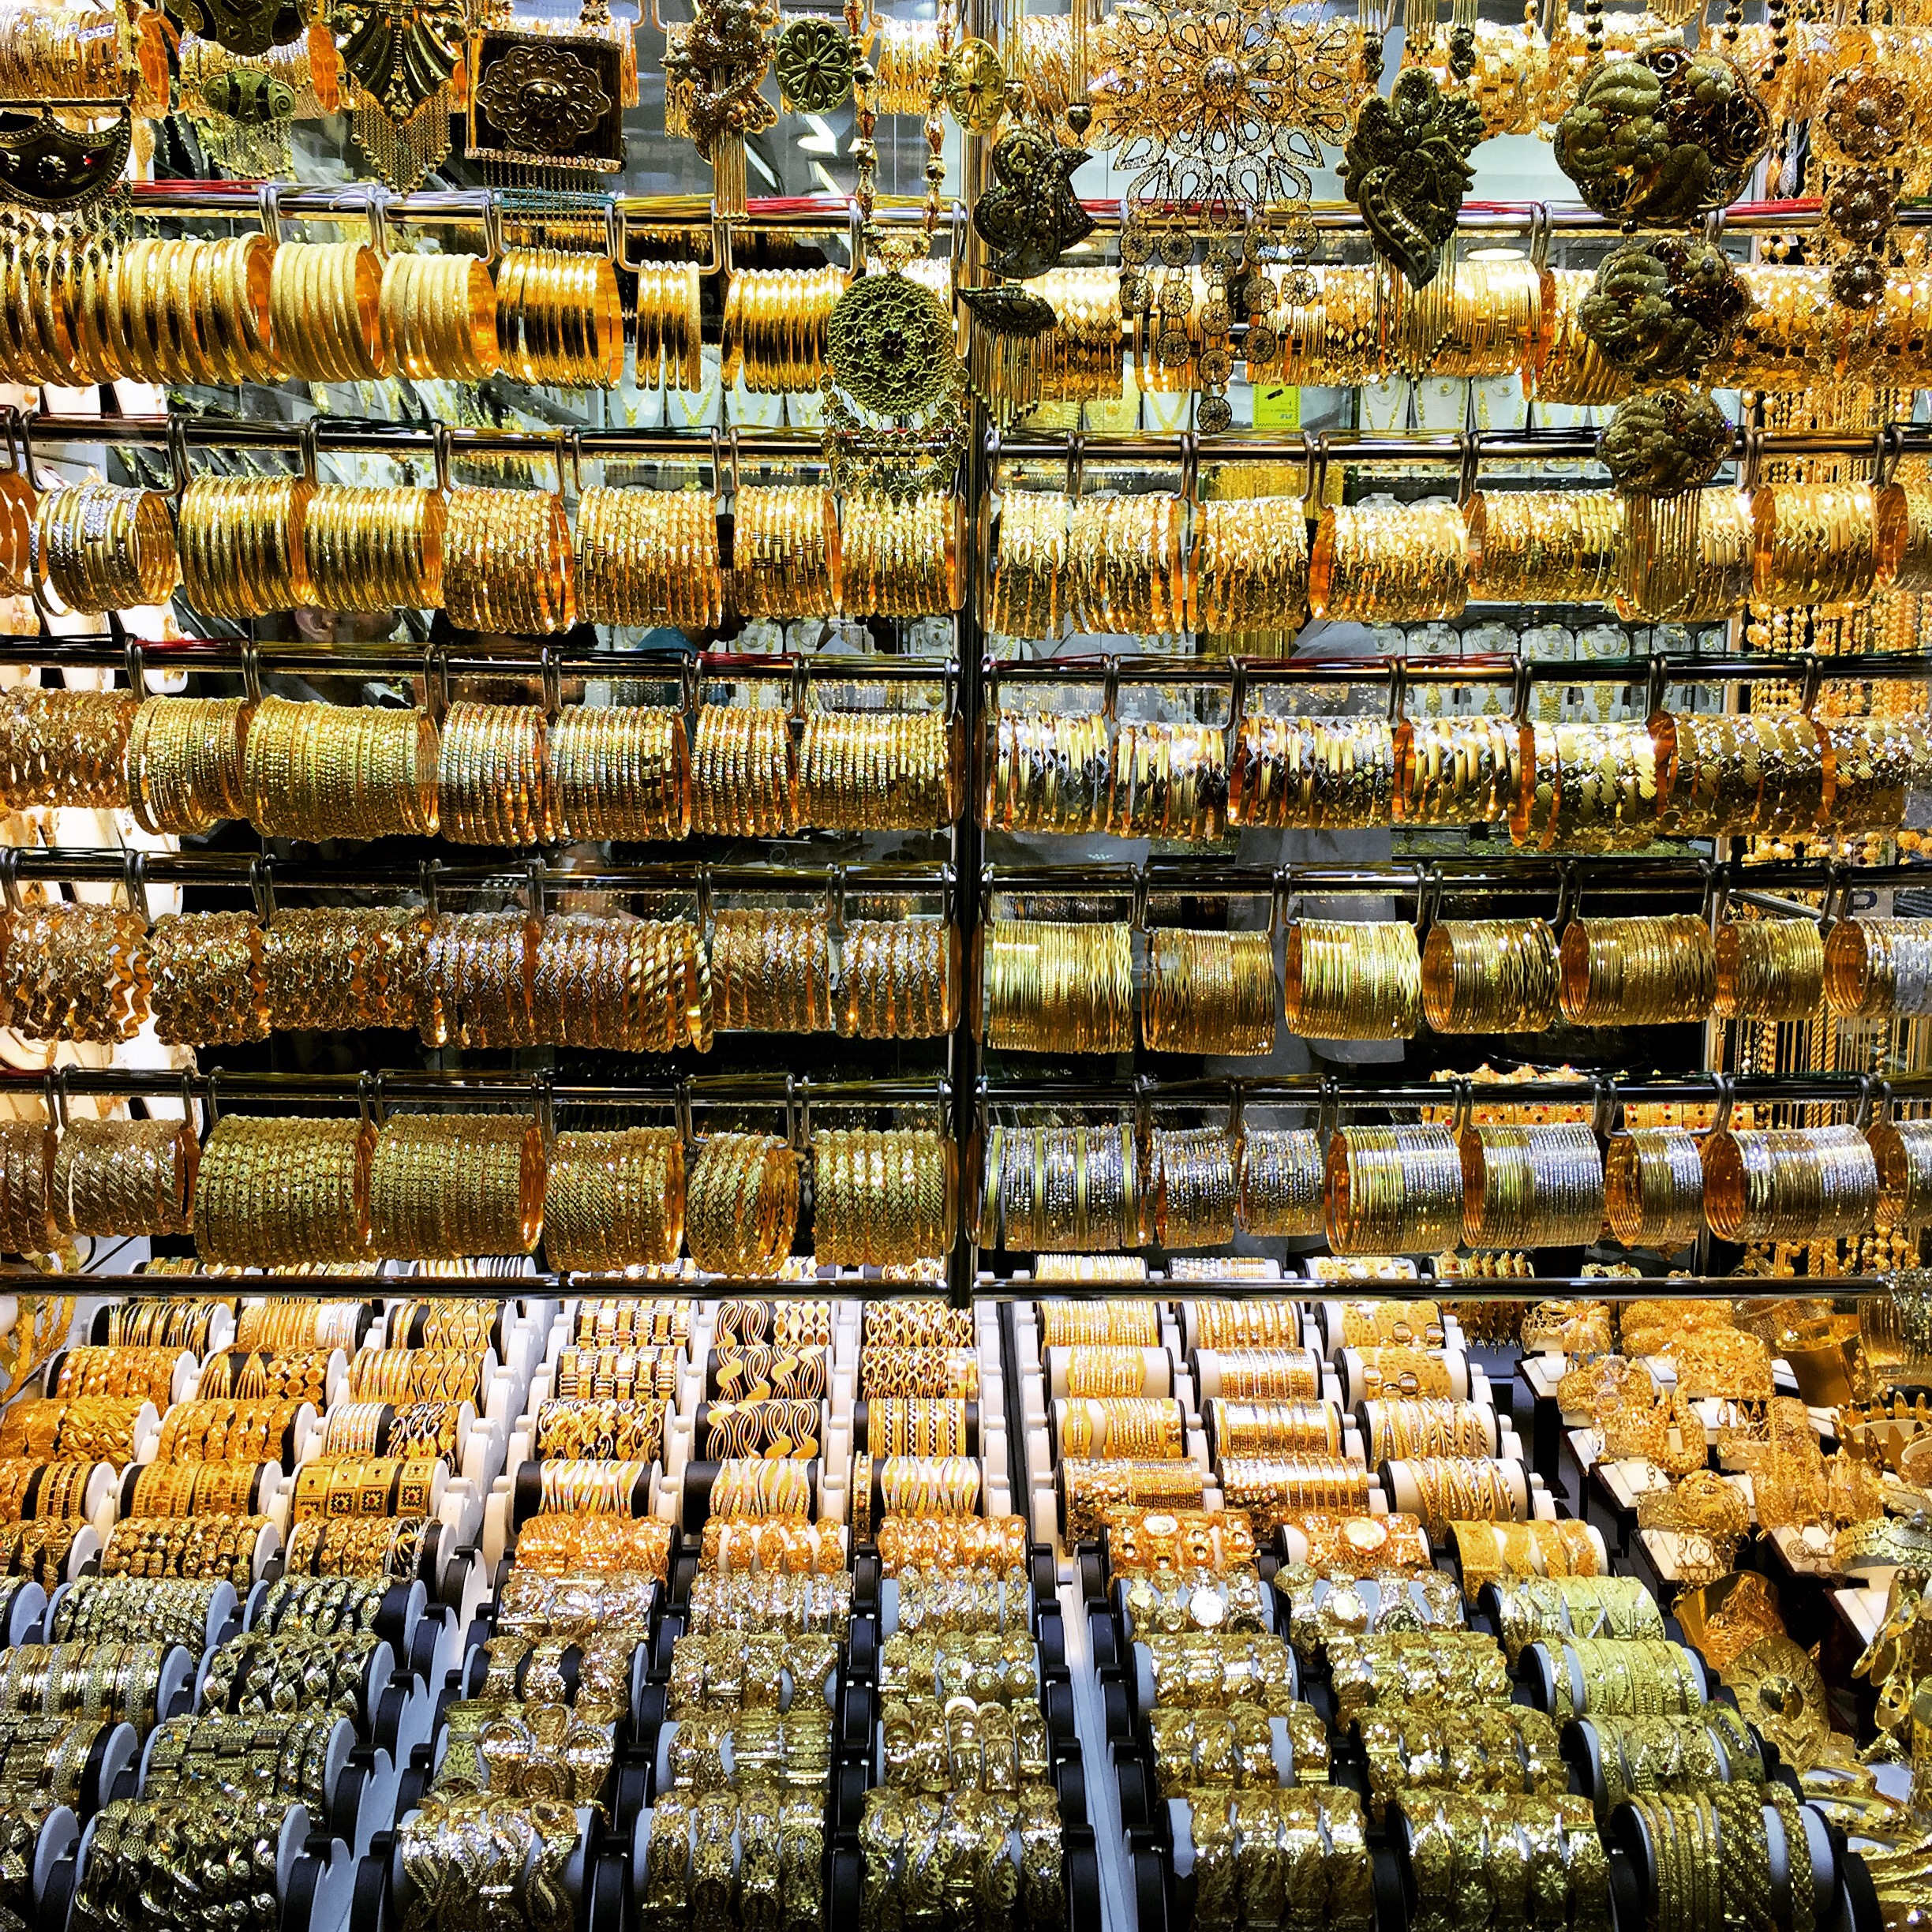 Gold bracelets at Dubai gold souk